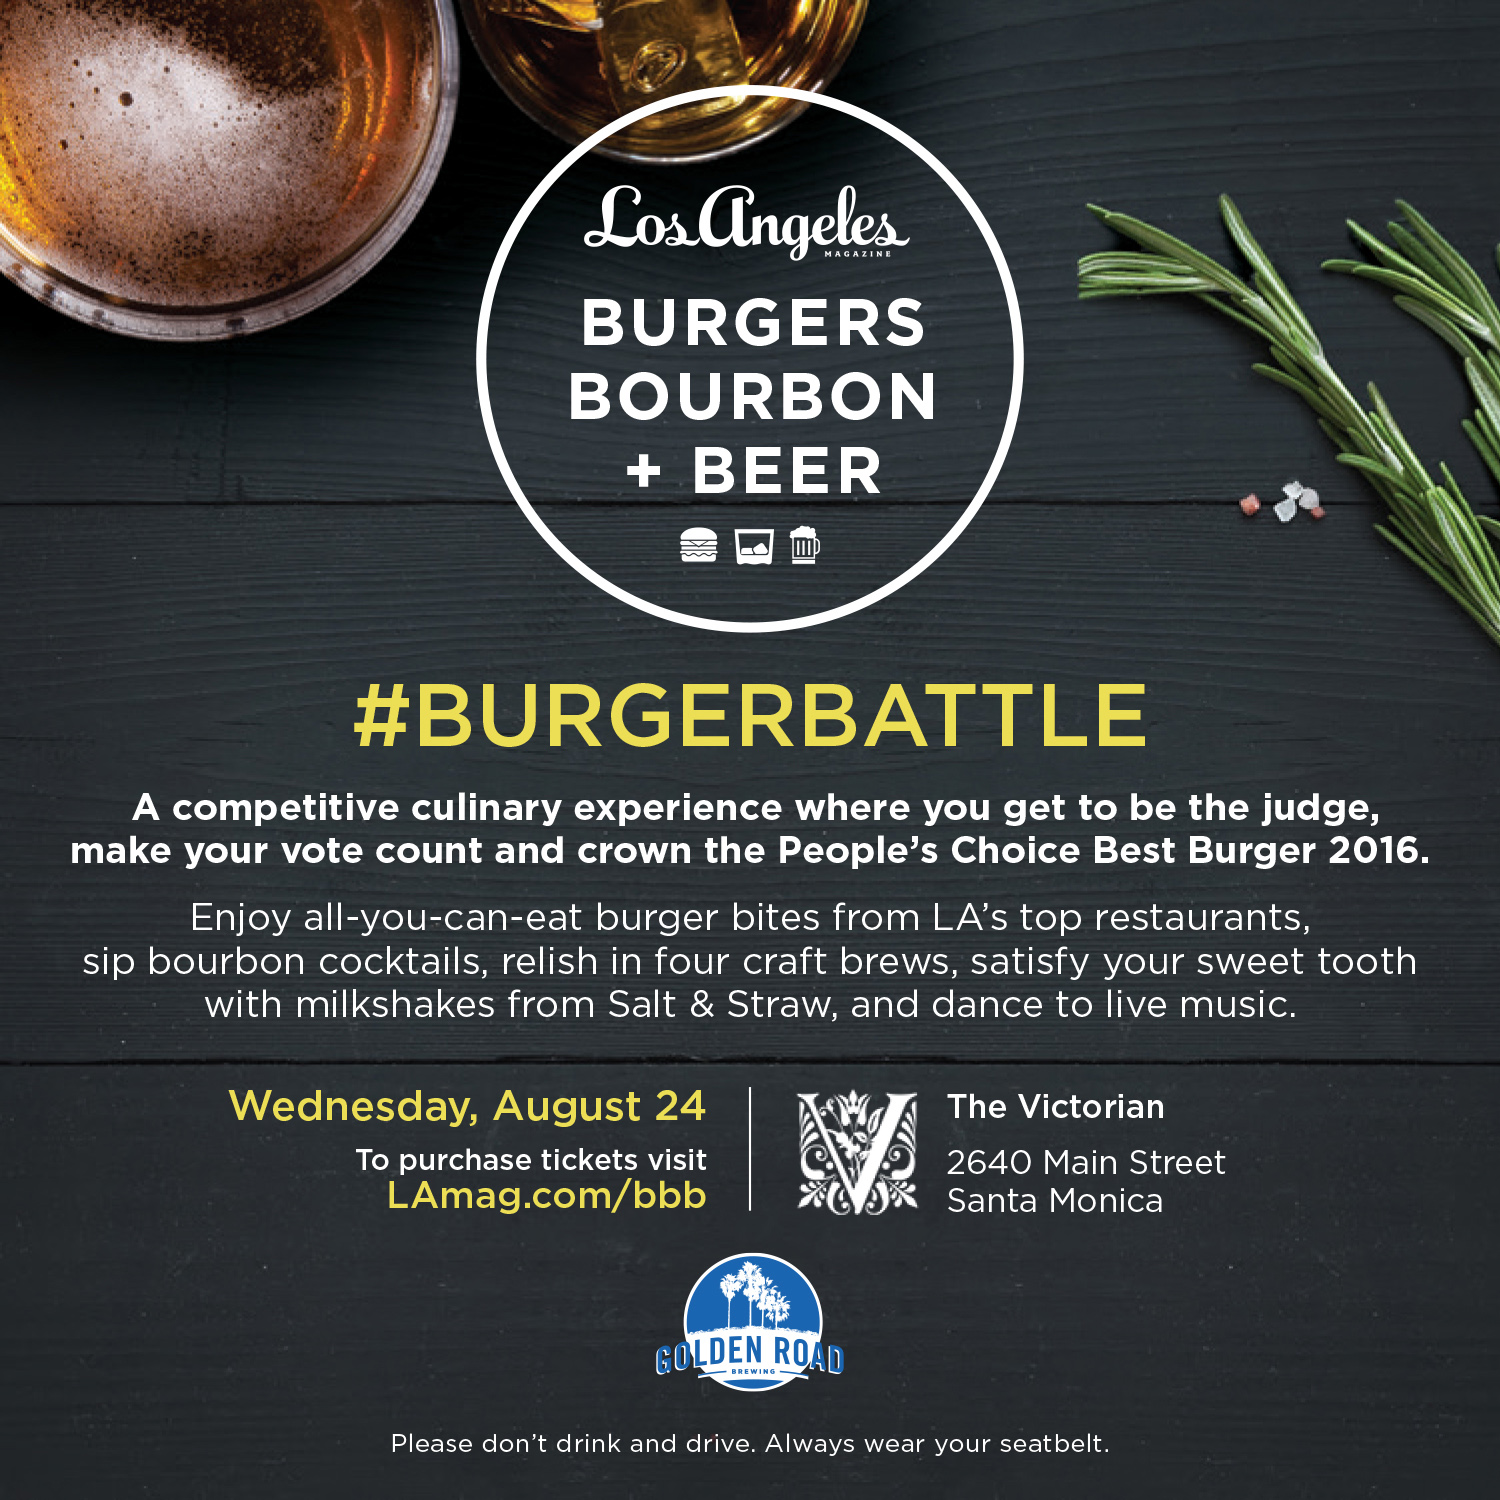 Burgers, Bourbon and Beer this Wednesday!